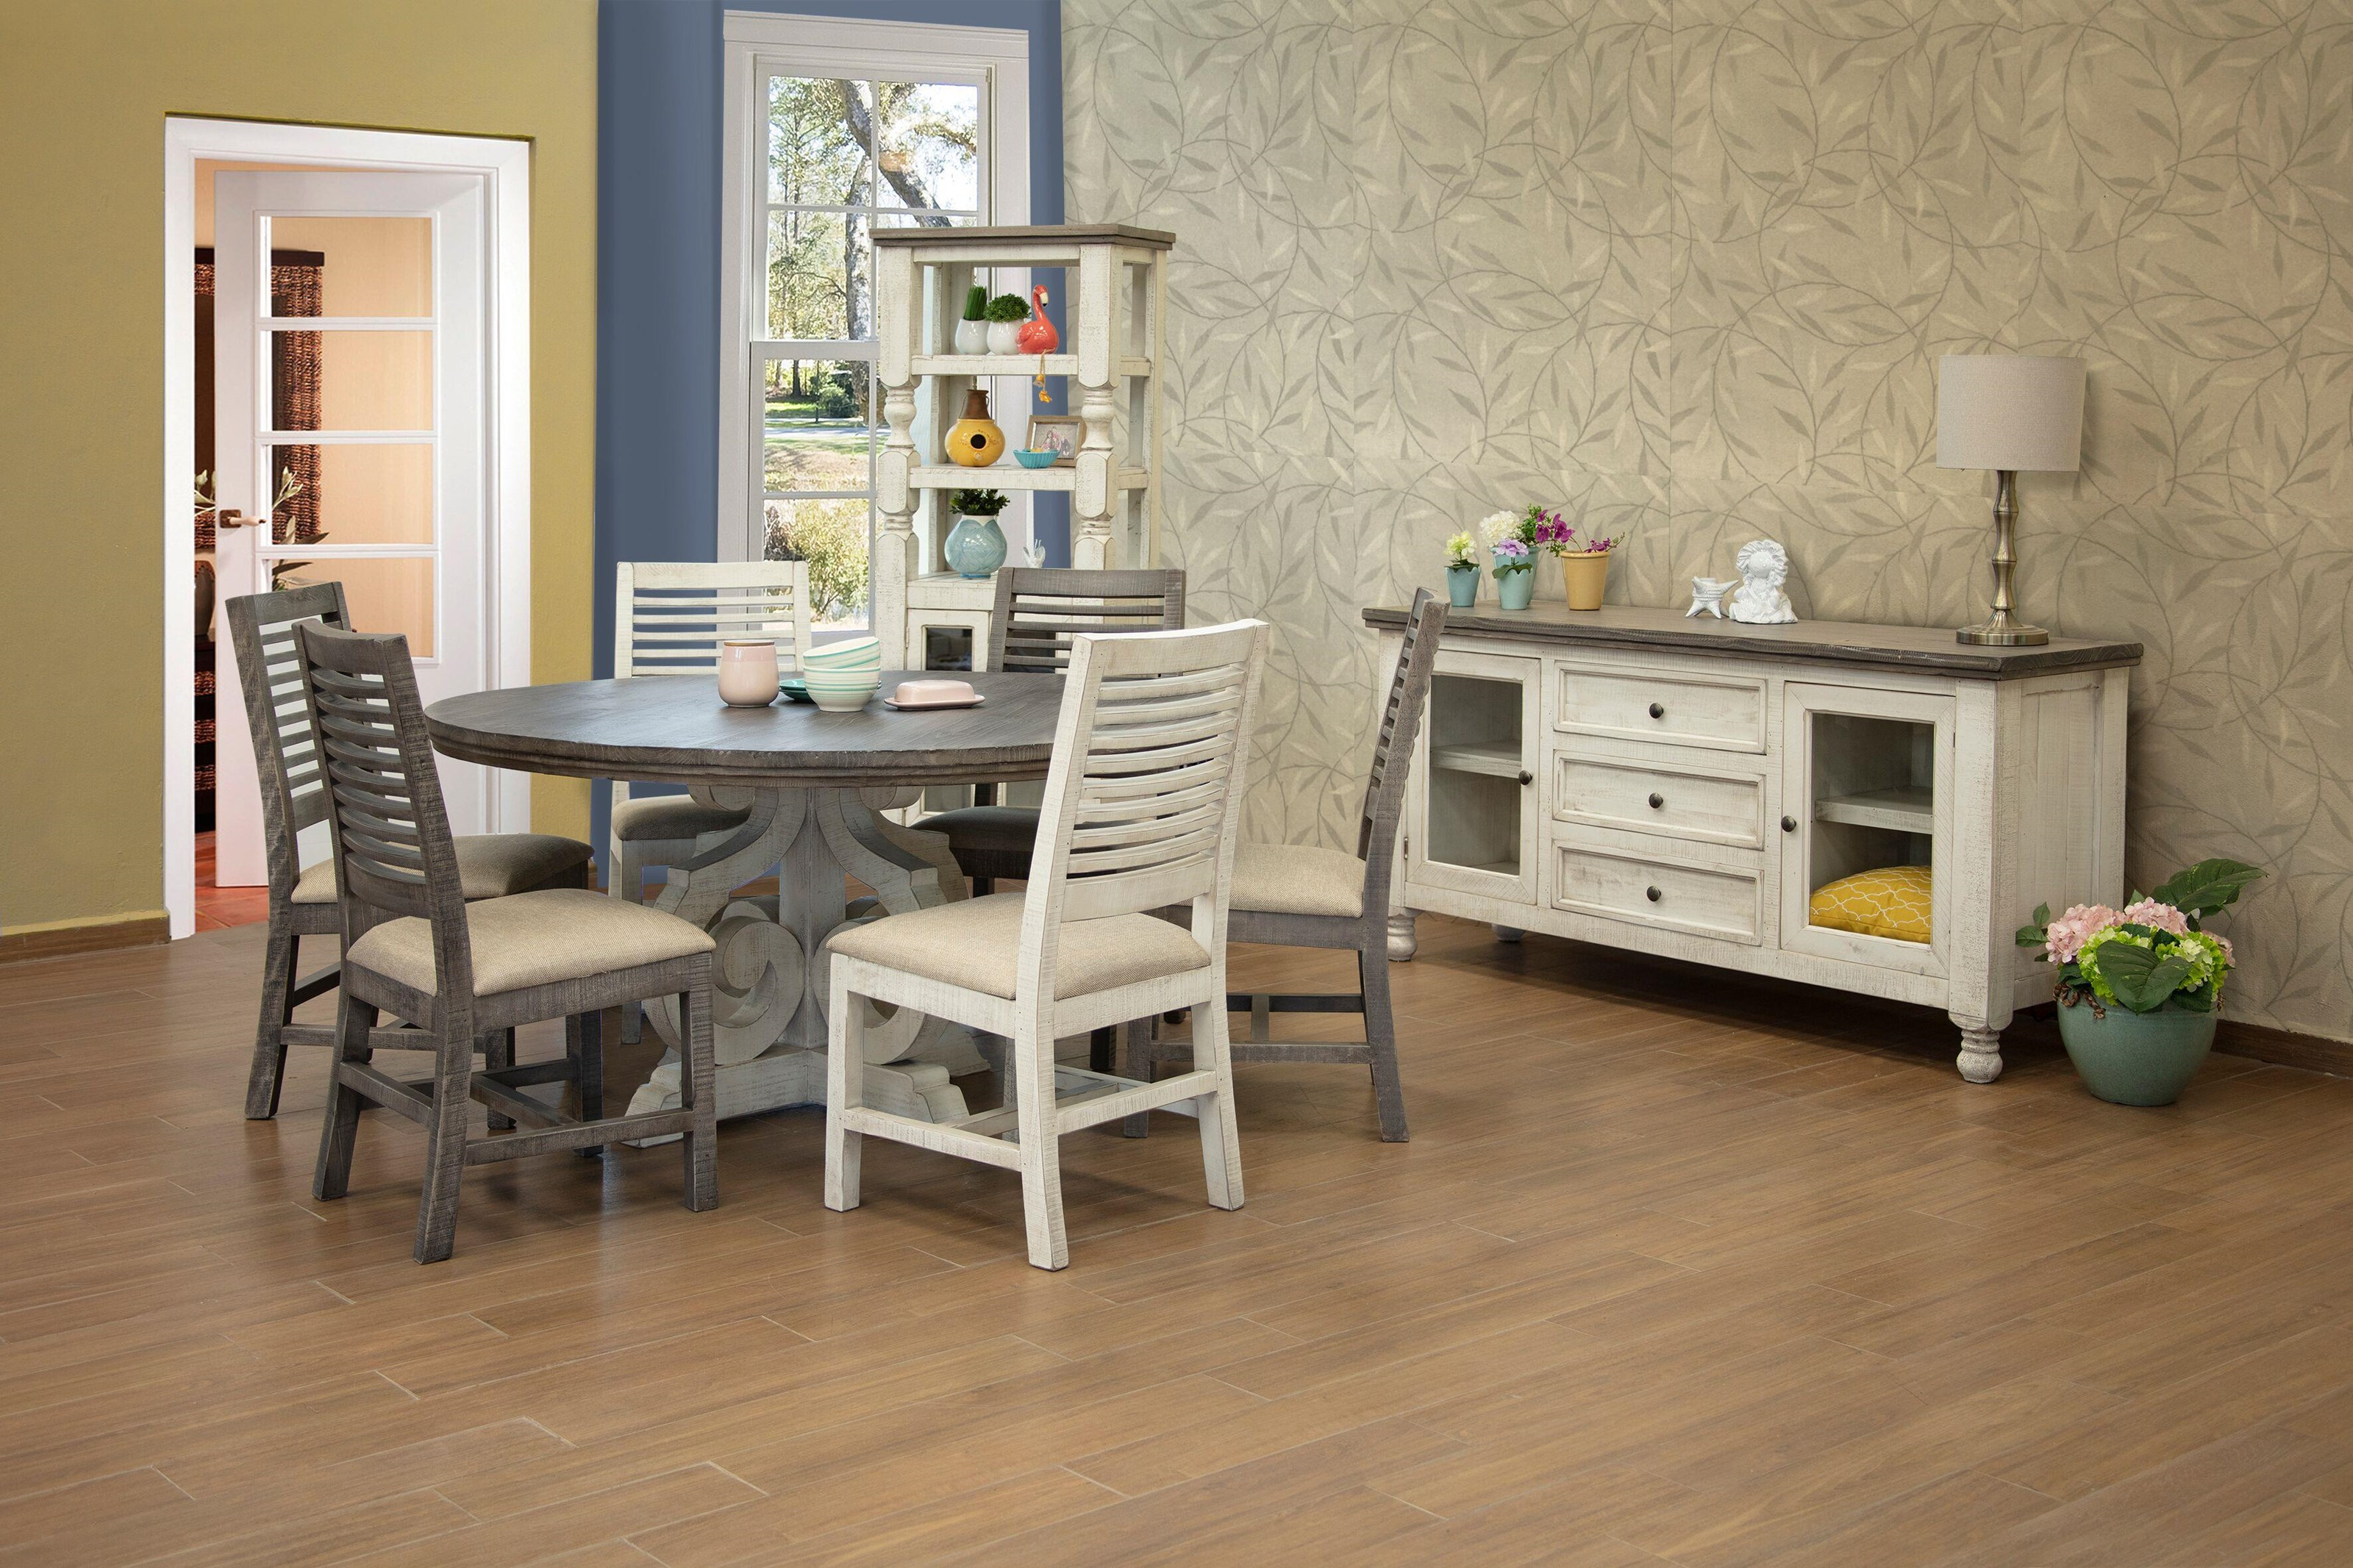 Stone 7 PC Dining Room Set by International Furniture Direct at Sam Levitz Outlet